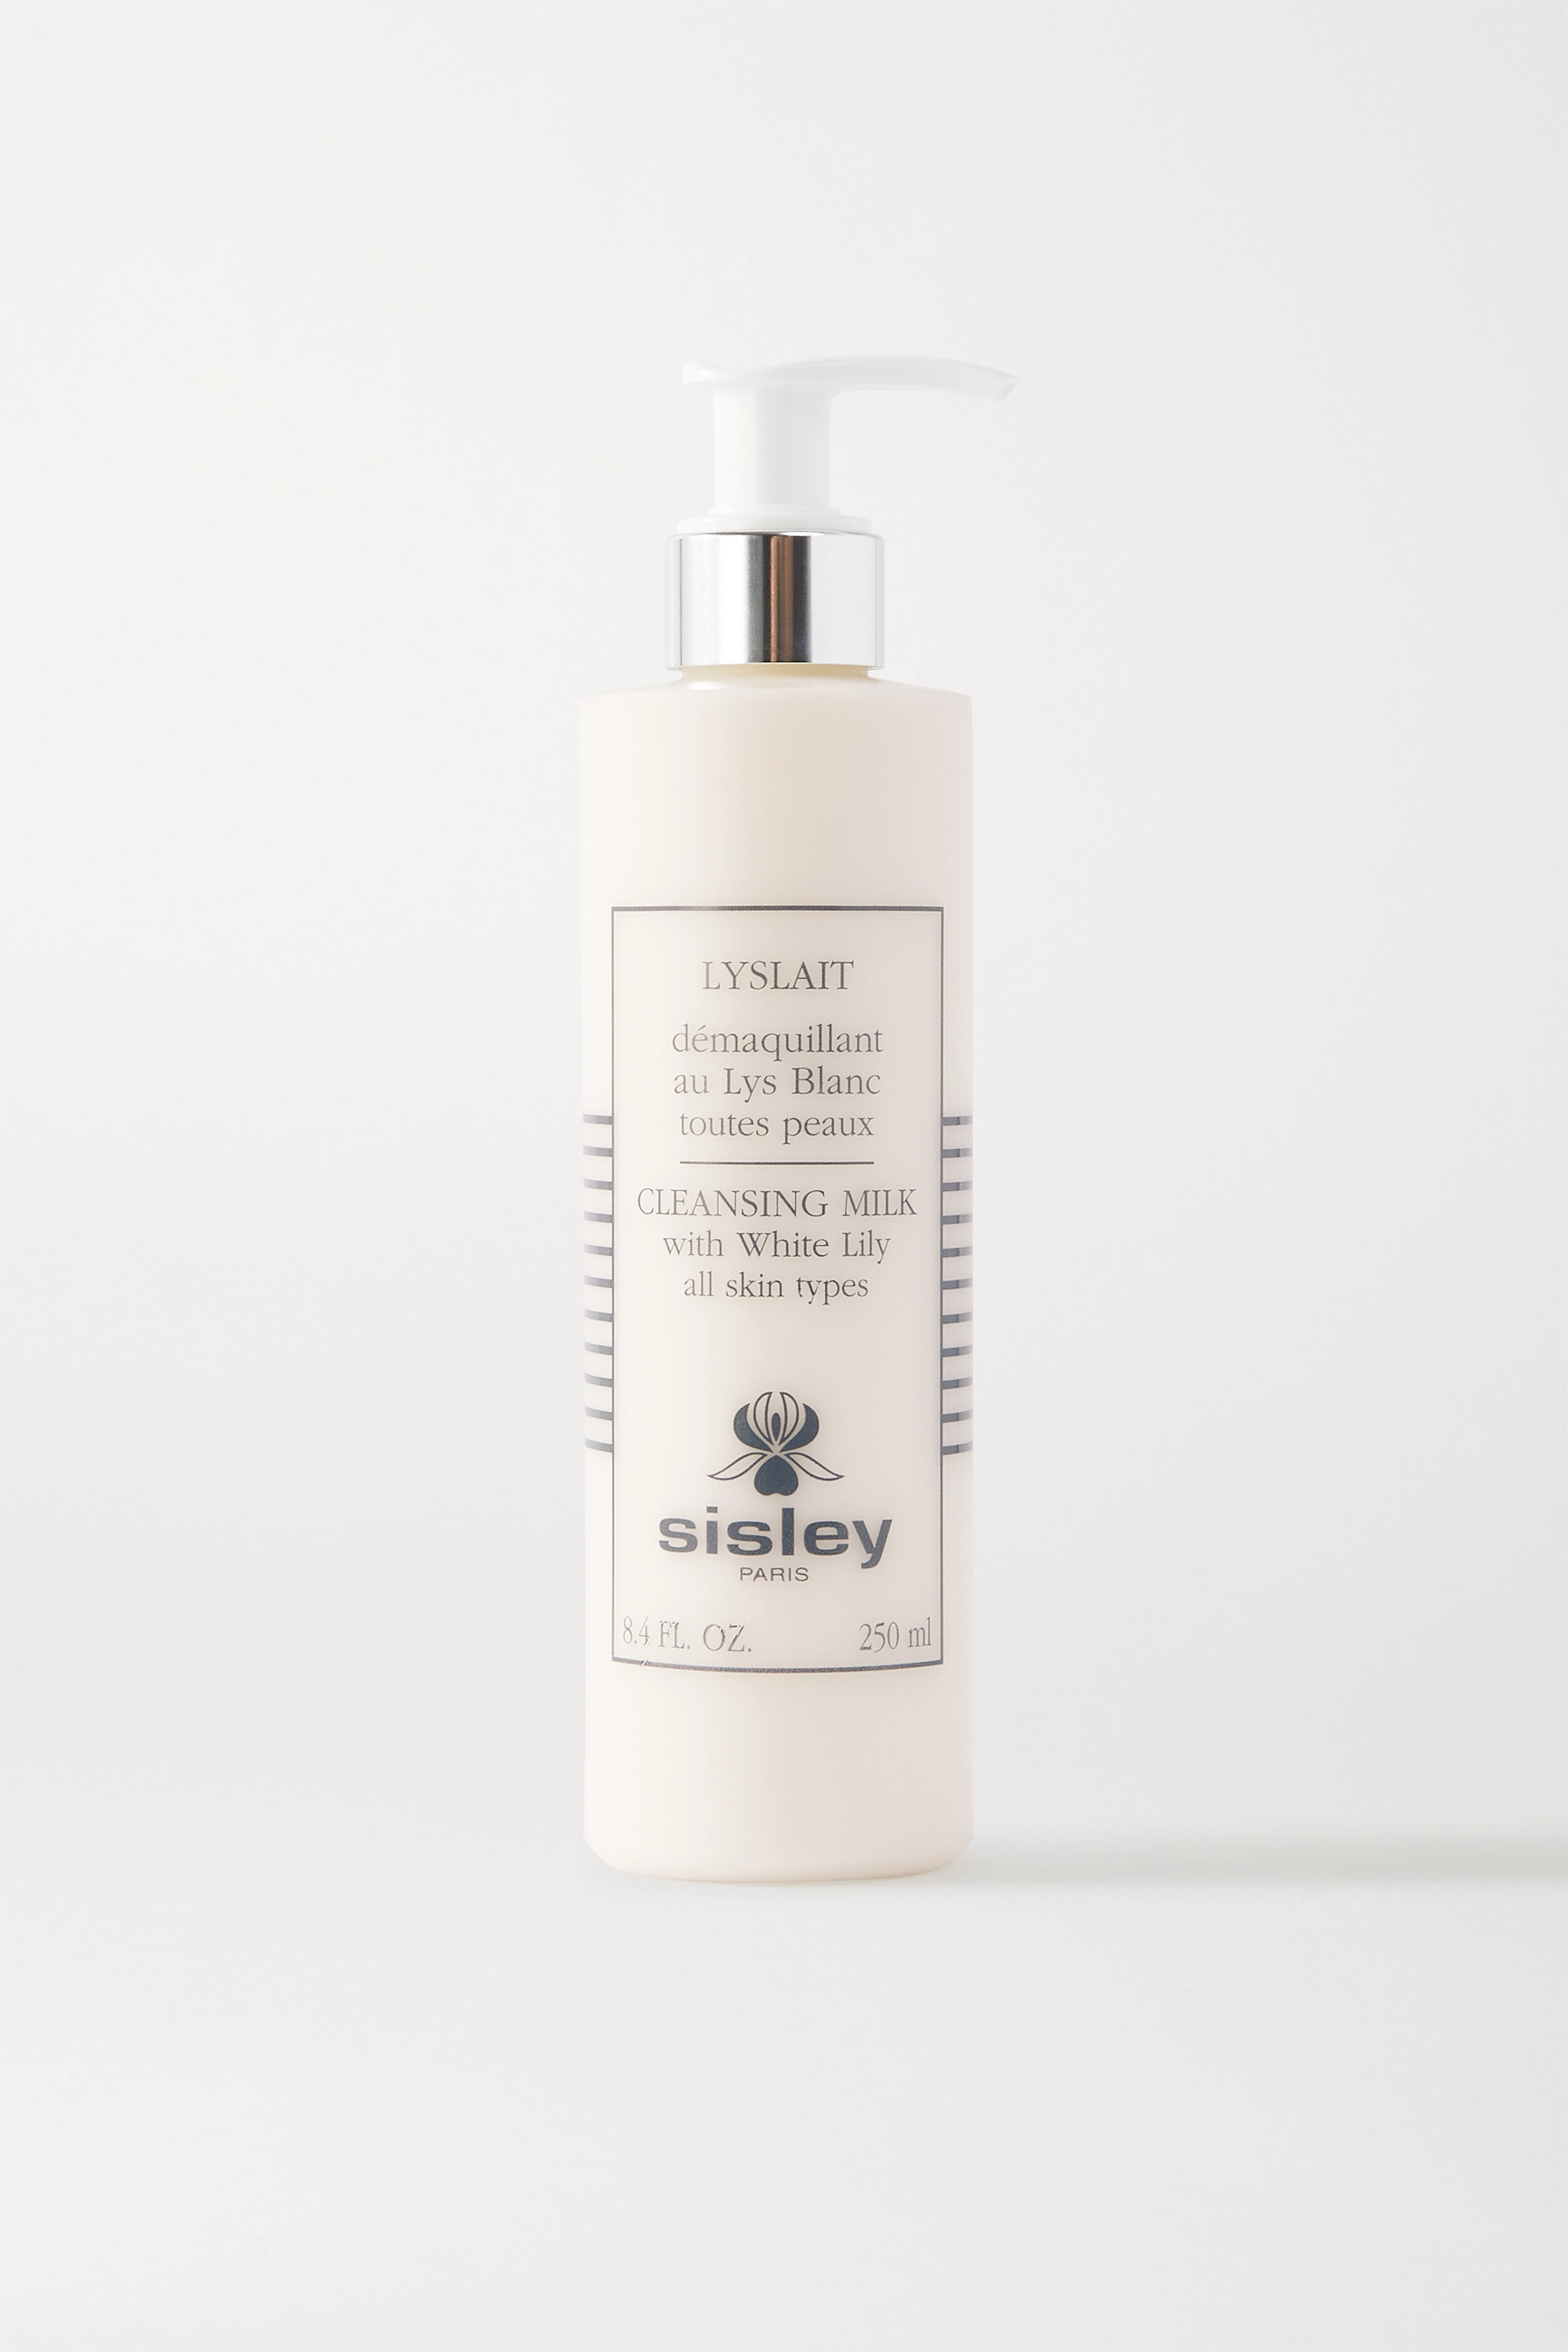 Sisley Lyslait Cleansing Milk with White Lily, 250ml